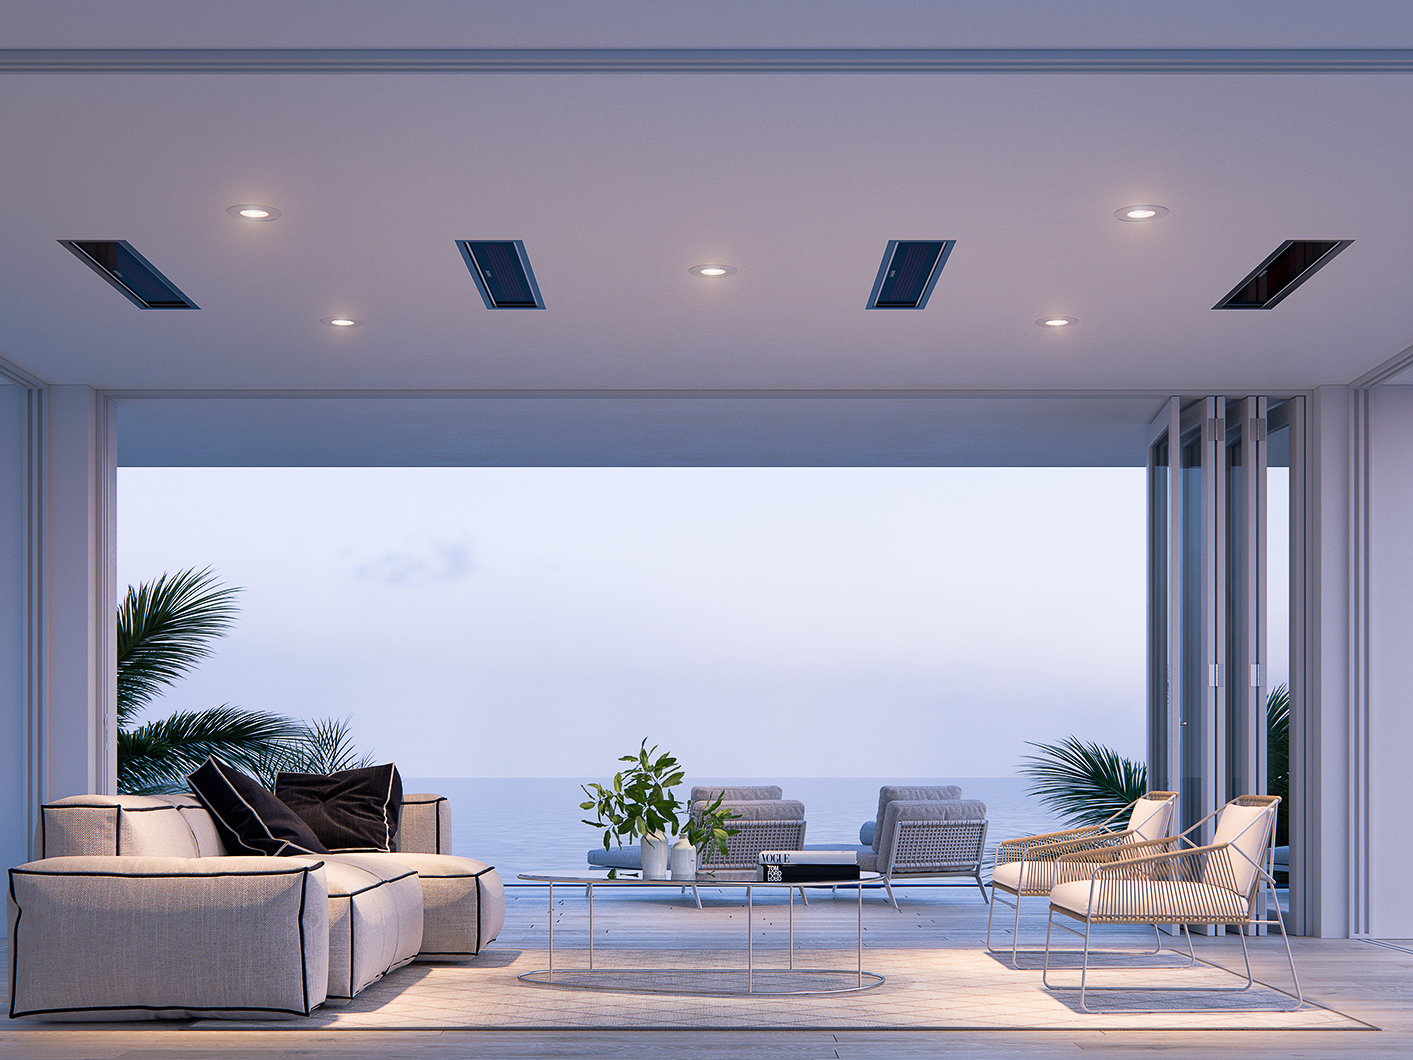 hight resolution of electric patio heaters everything you need to know woodlanddirect com